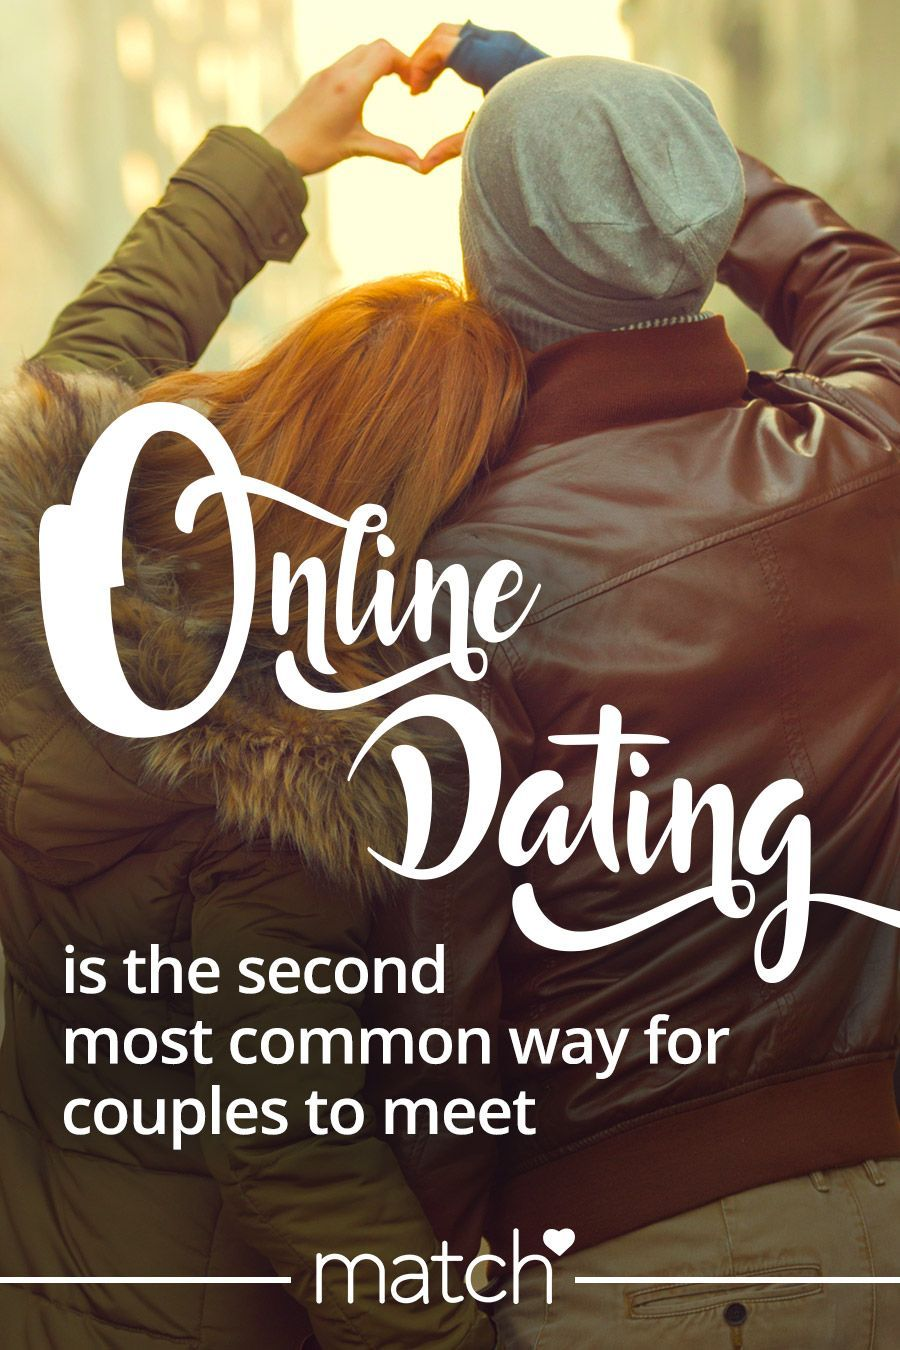 Online dating second most common